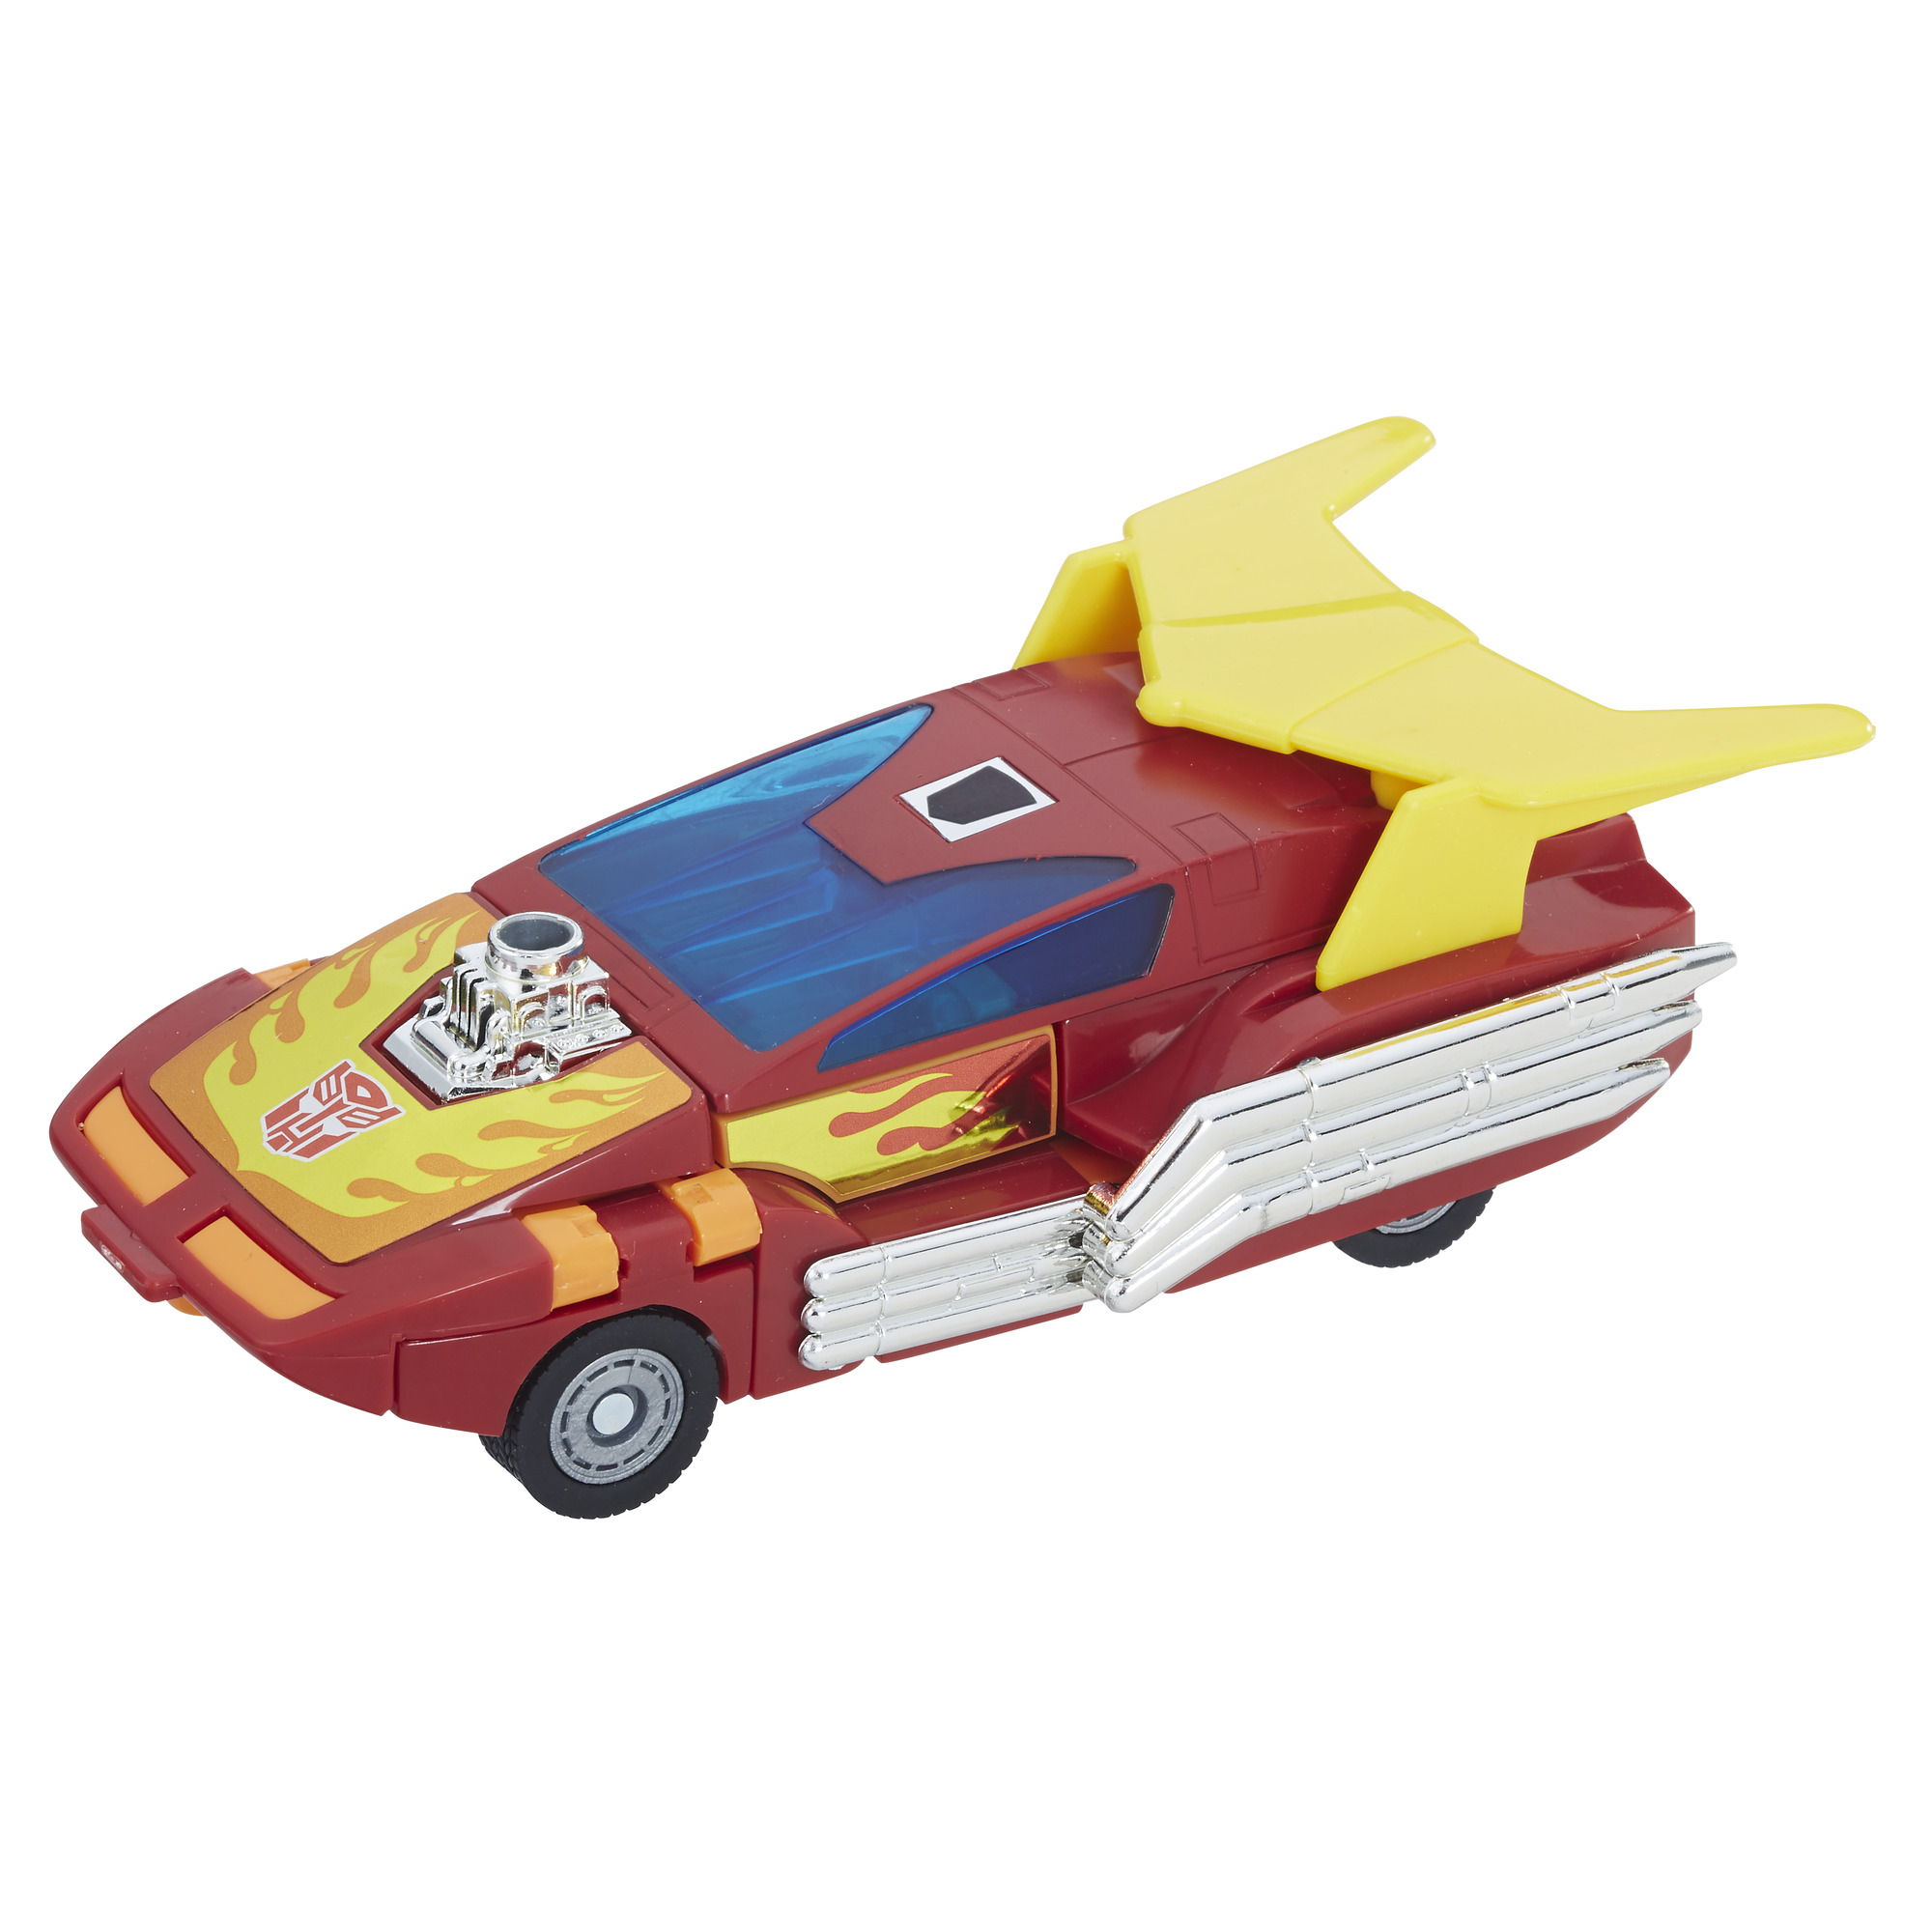 Transformers: Vintage G1 Autobot Hot Rod Only $12.97